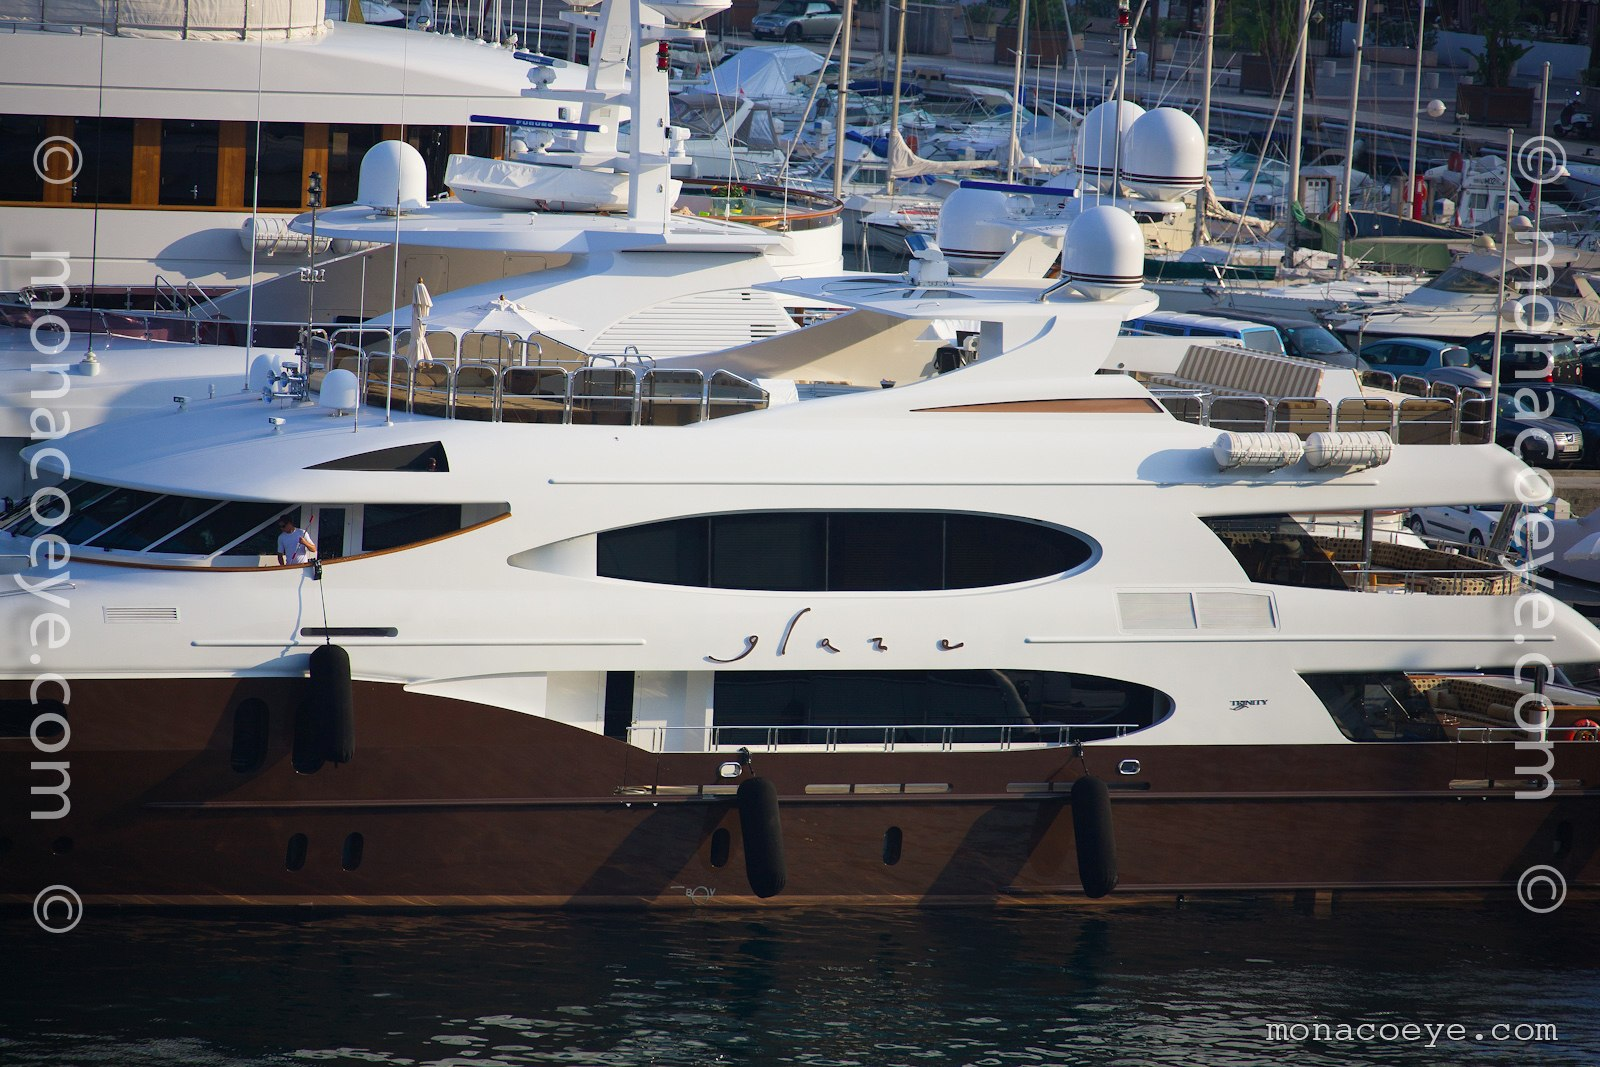 Glaze, 2007 design from Trinity Yachts. Ex Lady Michelle. Now with maroon hull.